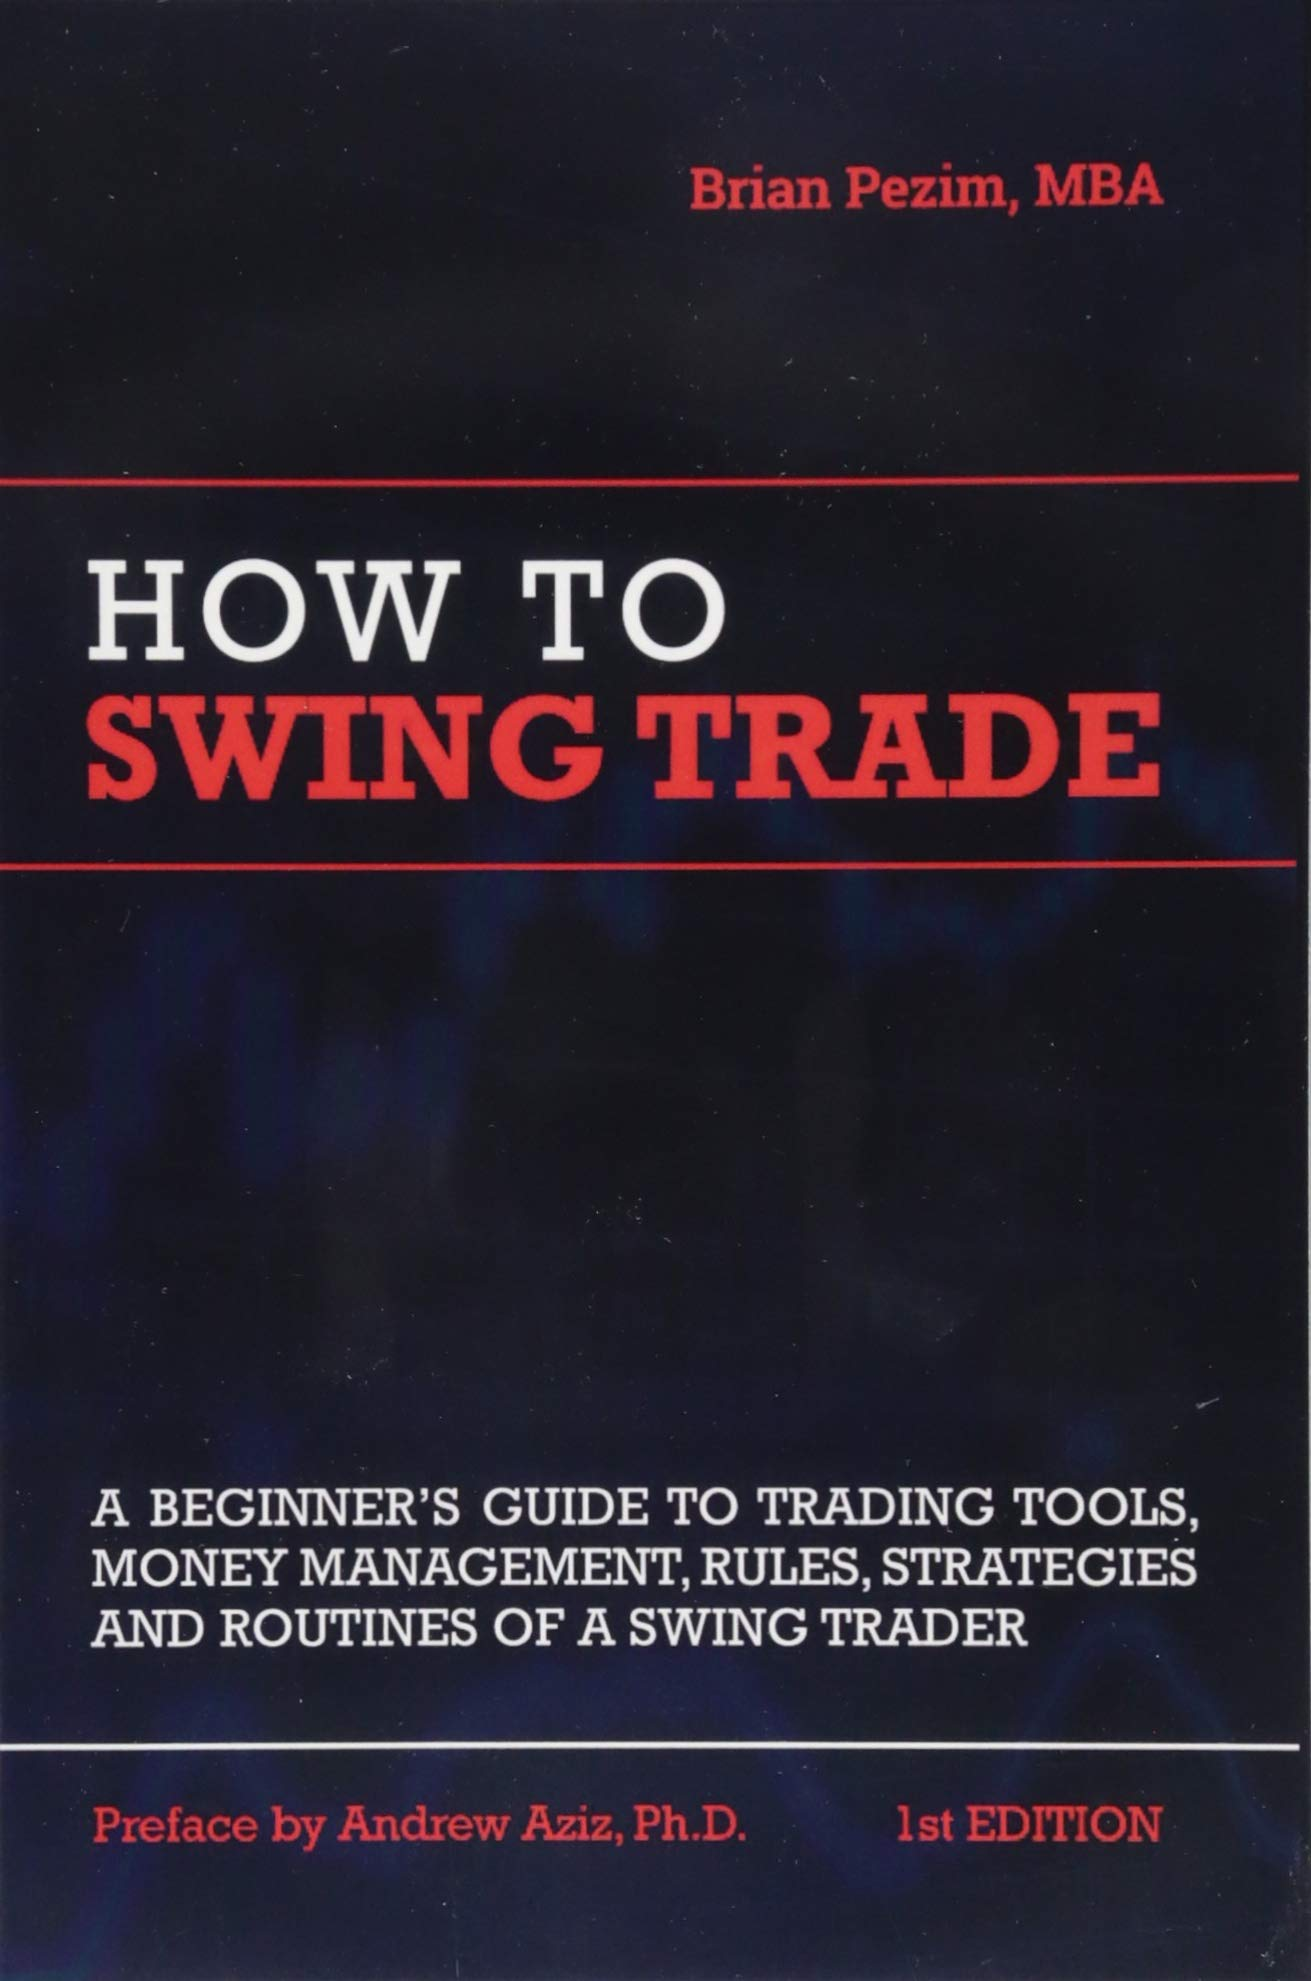 How Swing Trade Brian Pezim product image